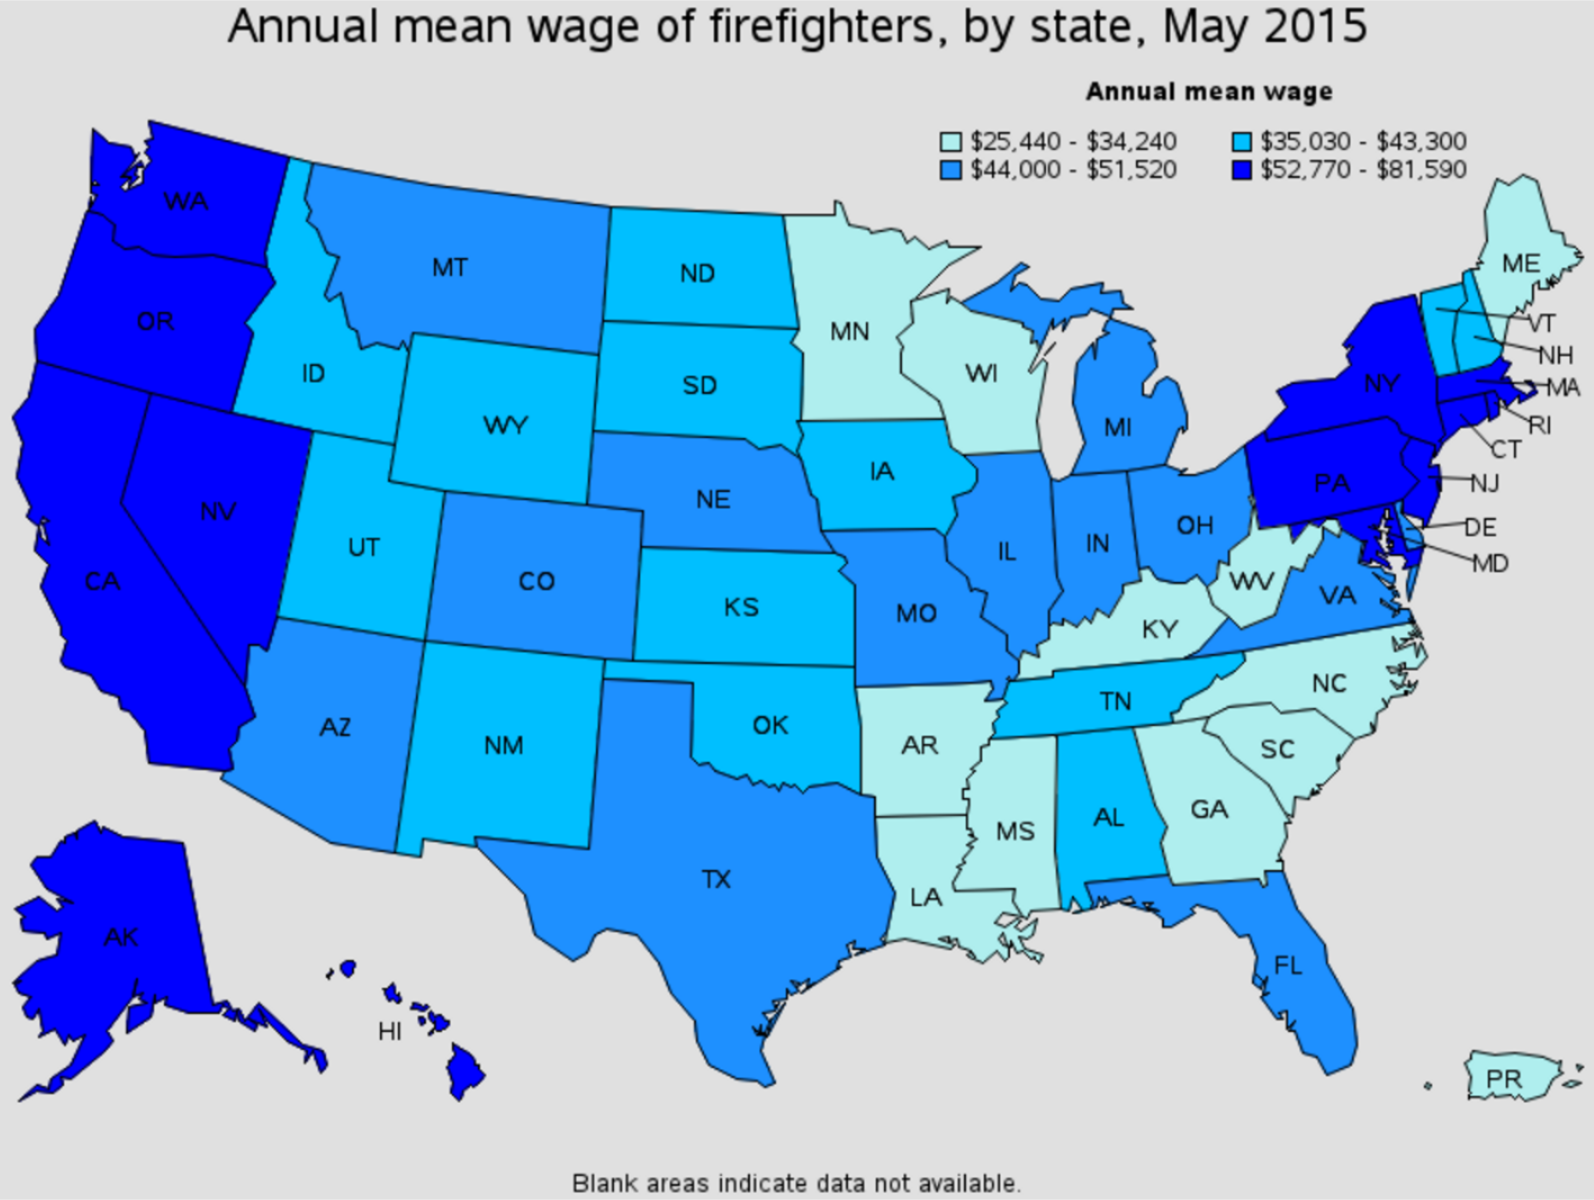 firefighter average salary by state Wilmington Ohio